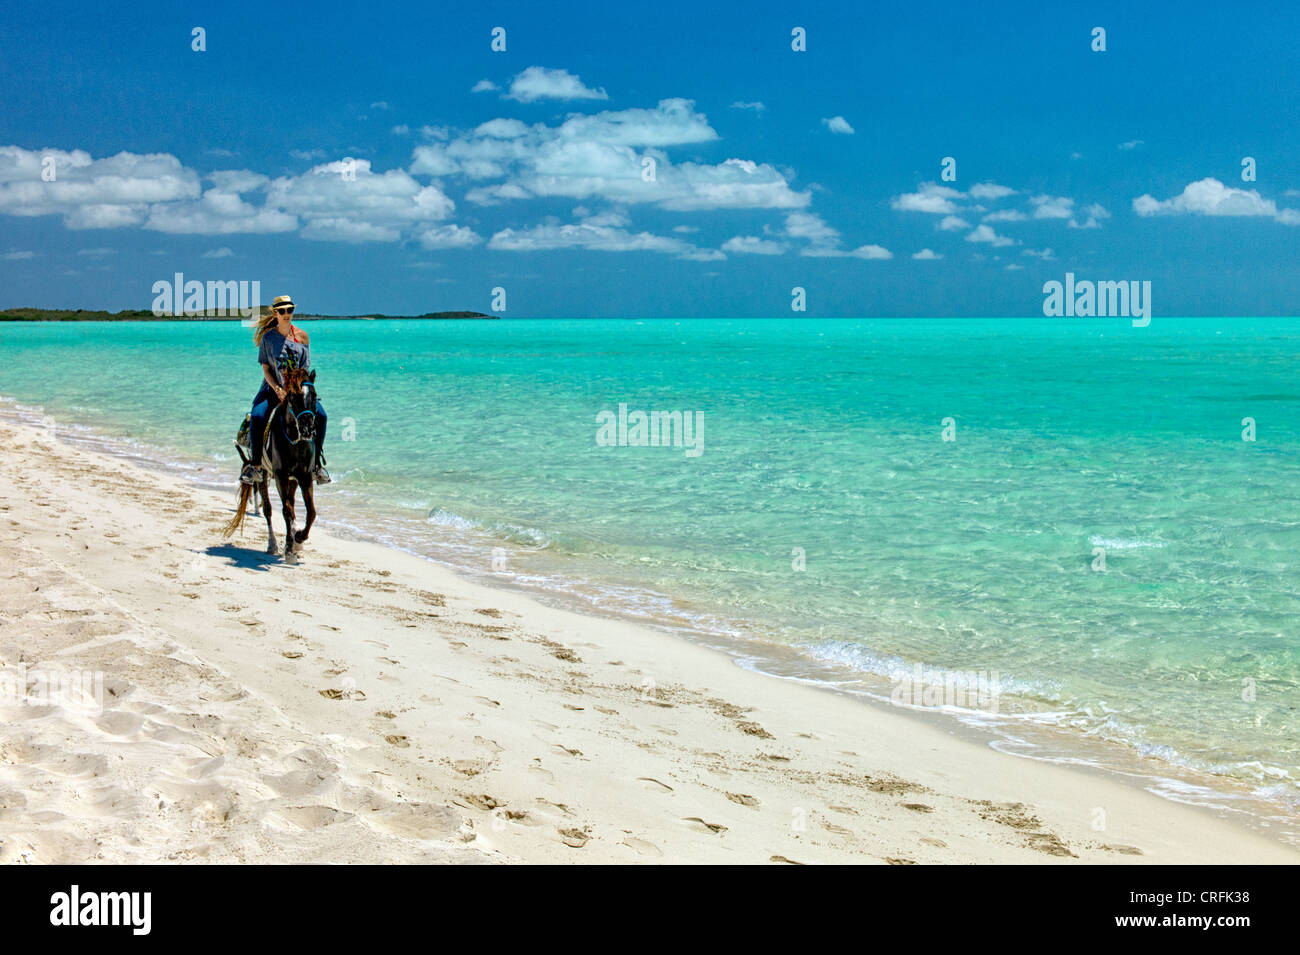 Horse rider troting on beach. Providenciales. Turks and Caicos.. - Stock Image